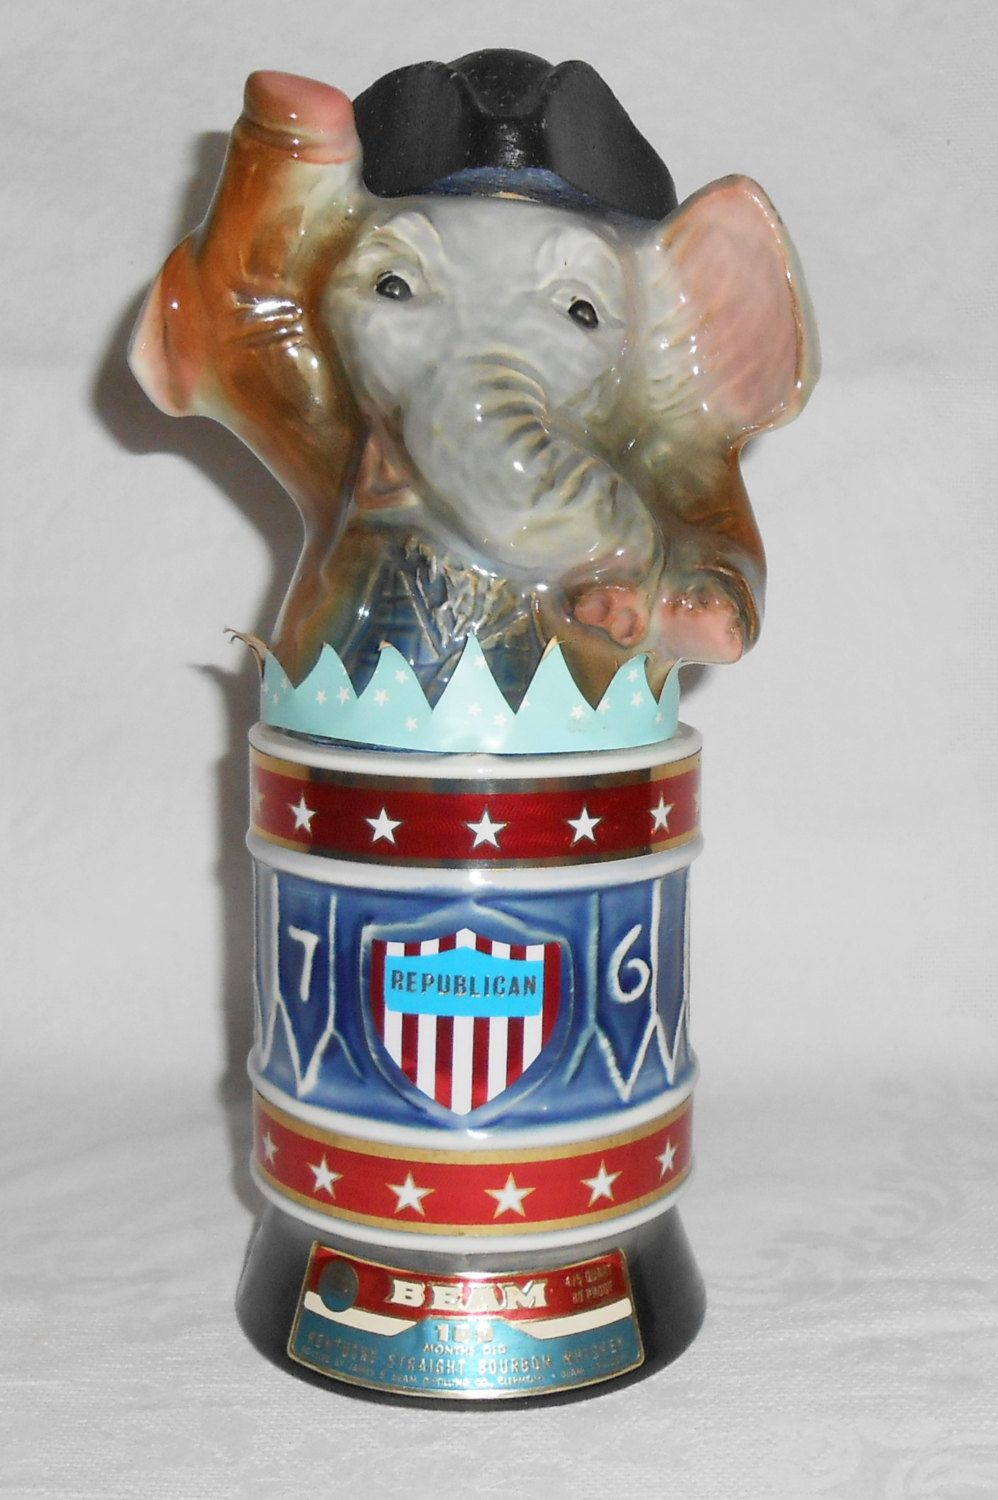 1976 Jim Beam Republican Elephant Whiskey Decanter Empty